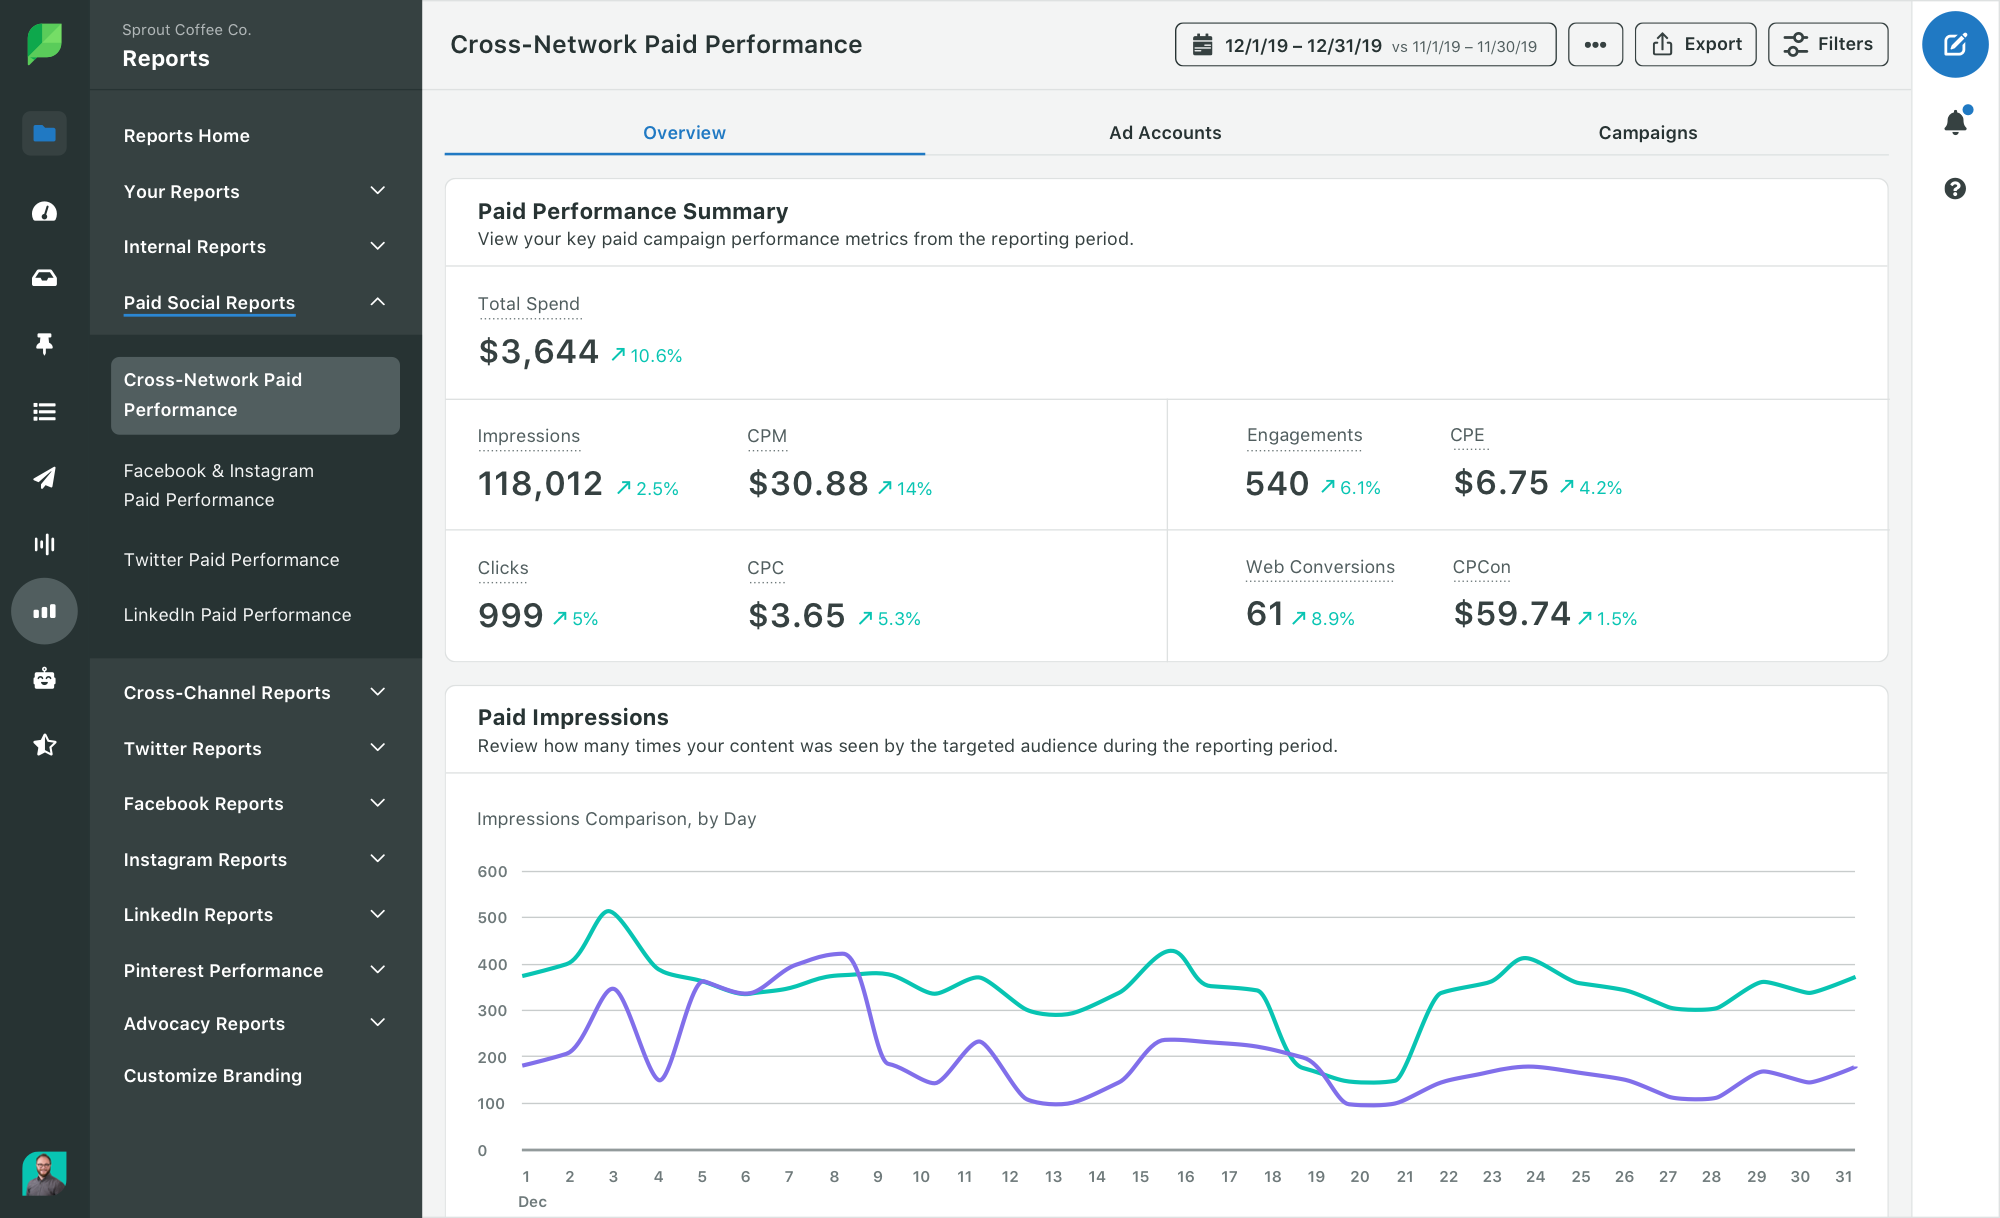 Screenshot of Sprout Social's Cross-Network Paid Performance Report